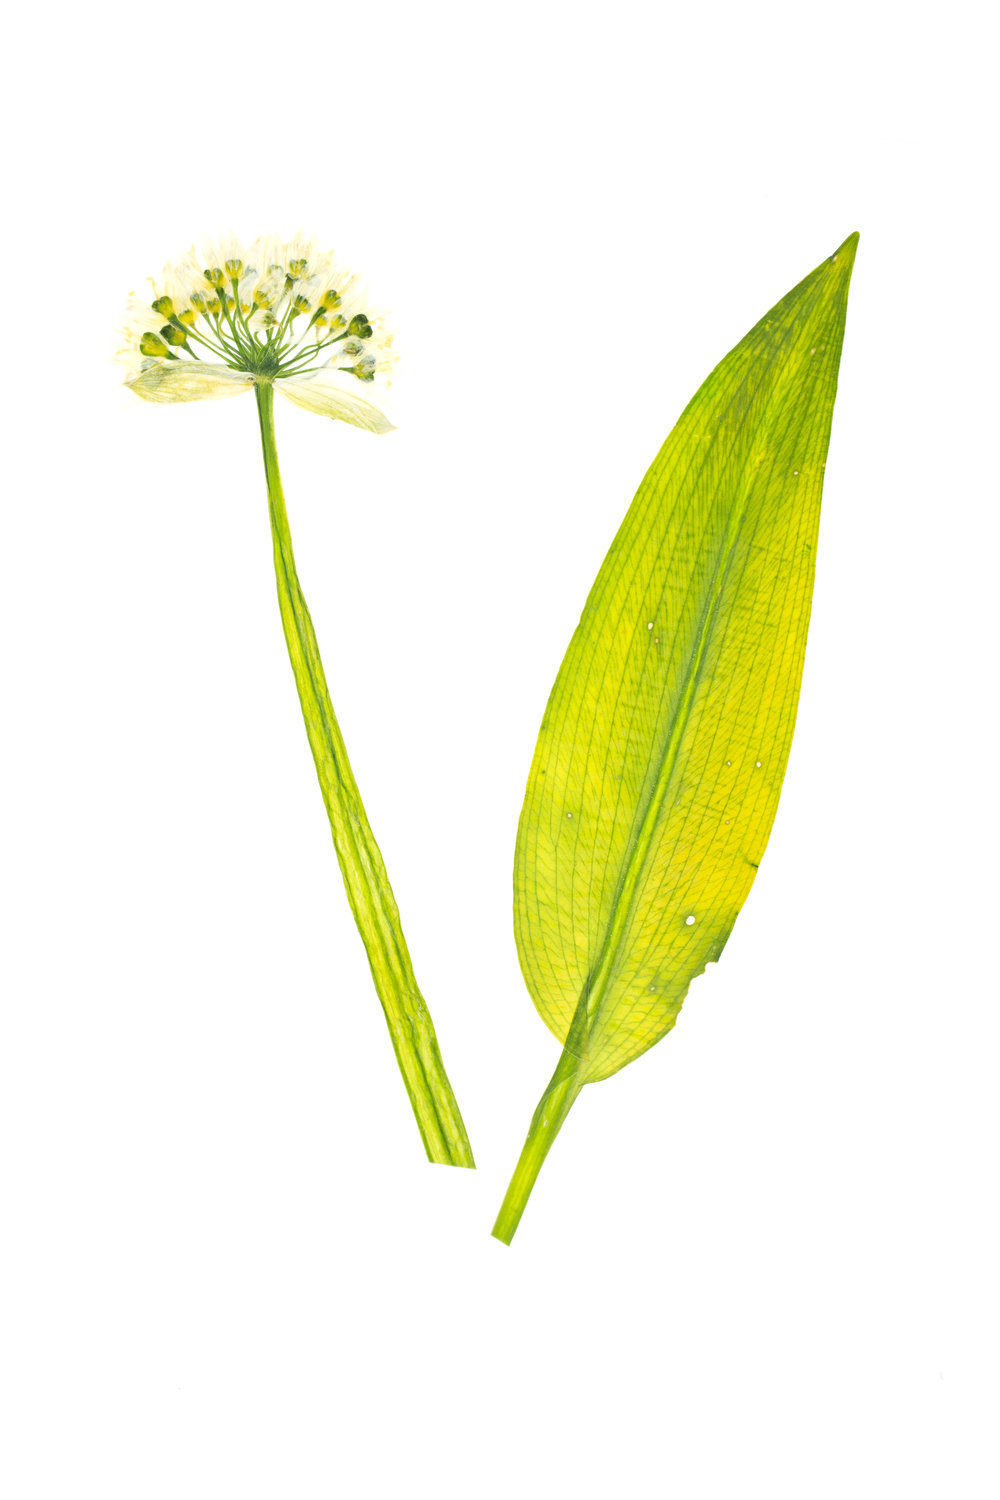 New! Wild Garlic / Allium ursinum